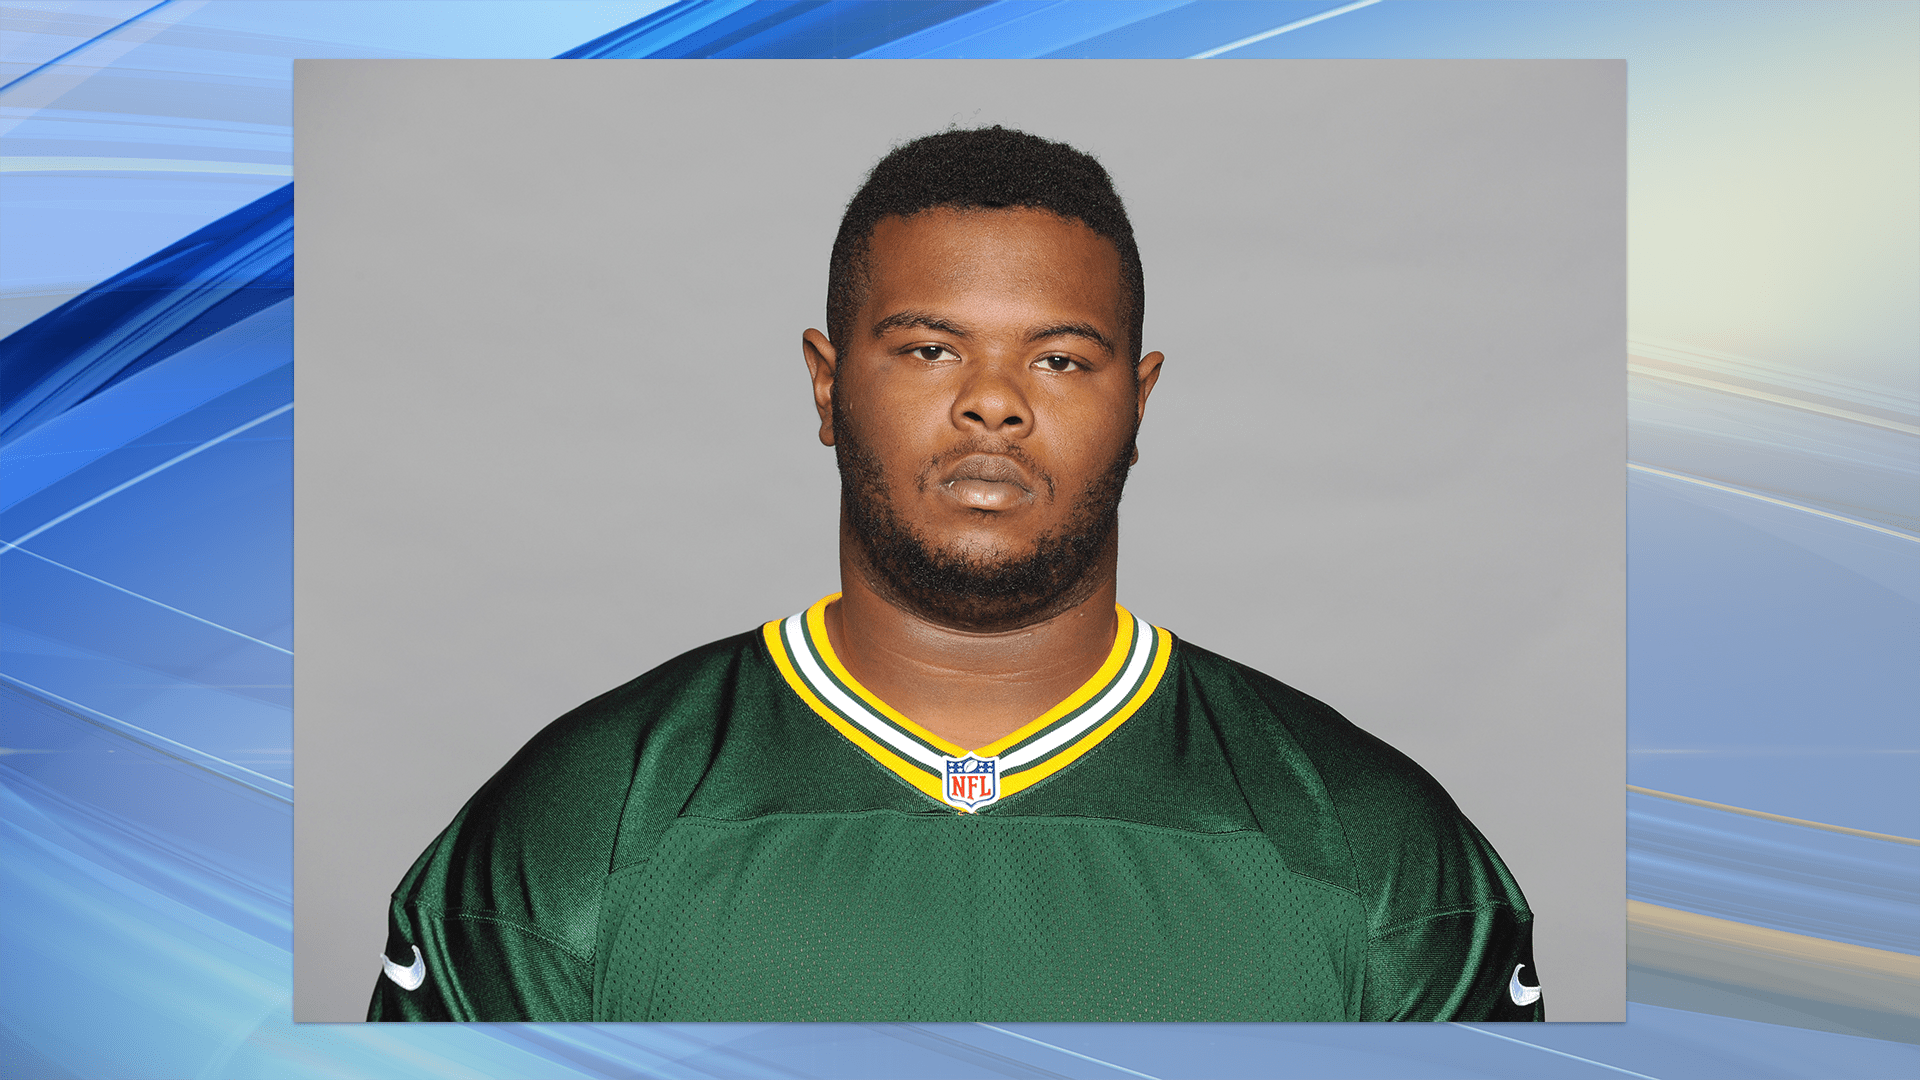 green bay packers player carlos tyrell gray_1525189954740.png.jpg